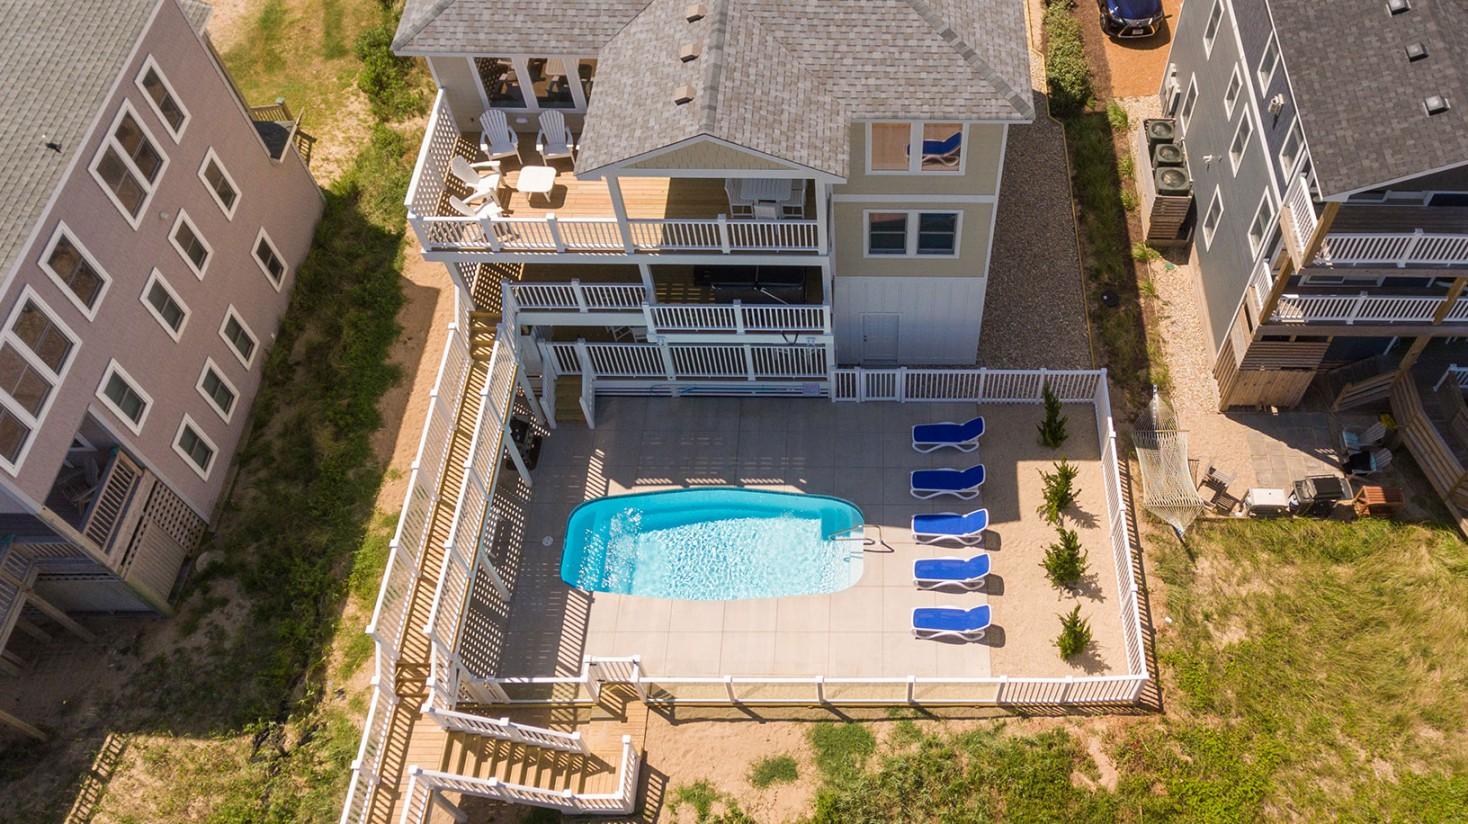 Custom Home in Duck, NC with pool and beach acccess walkway